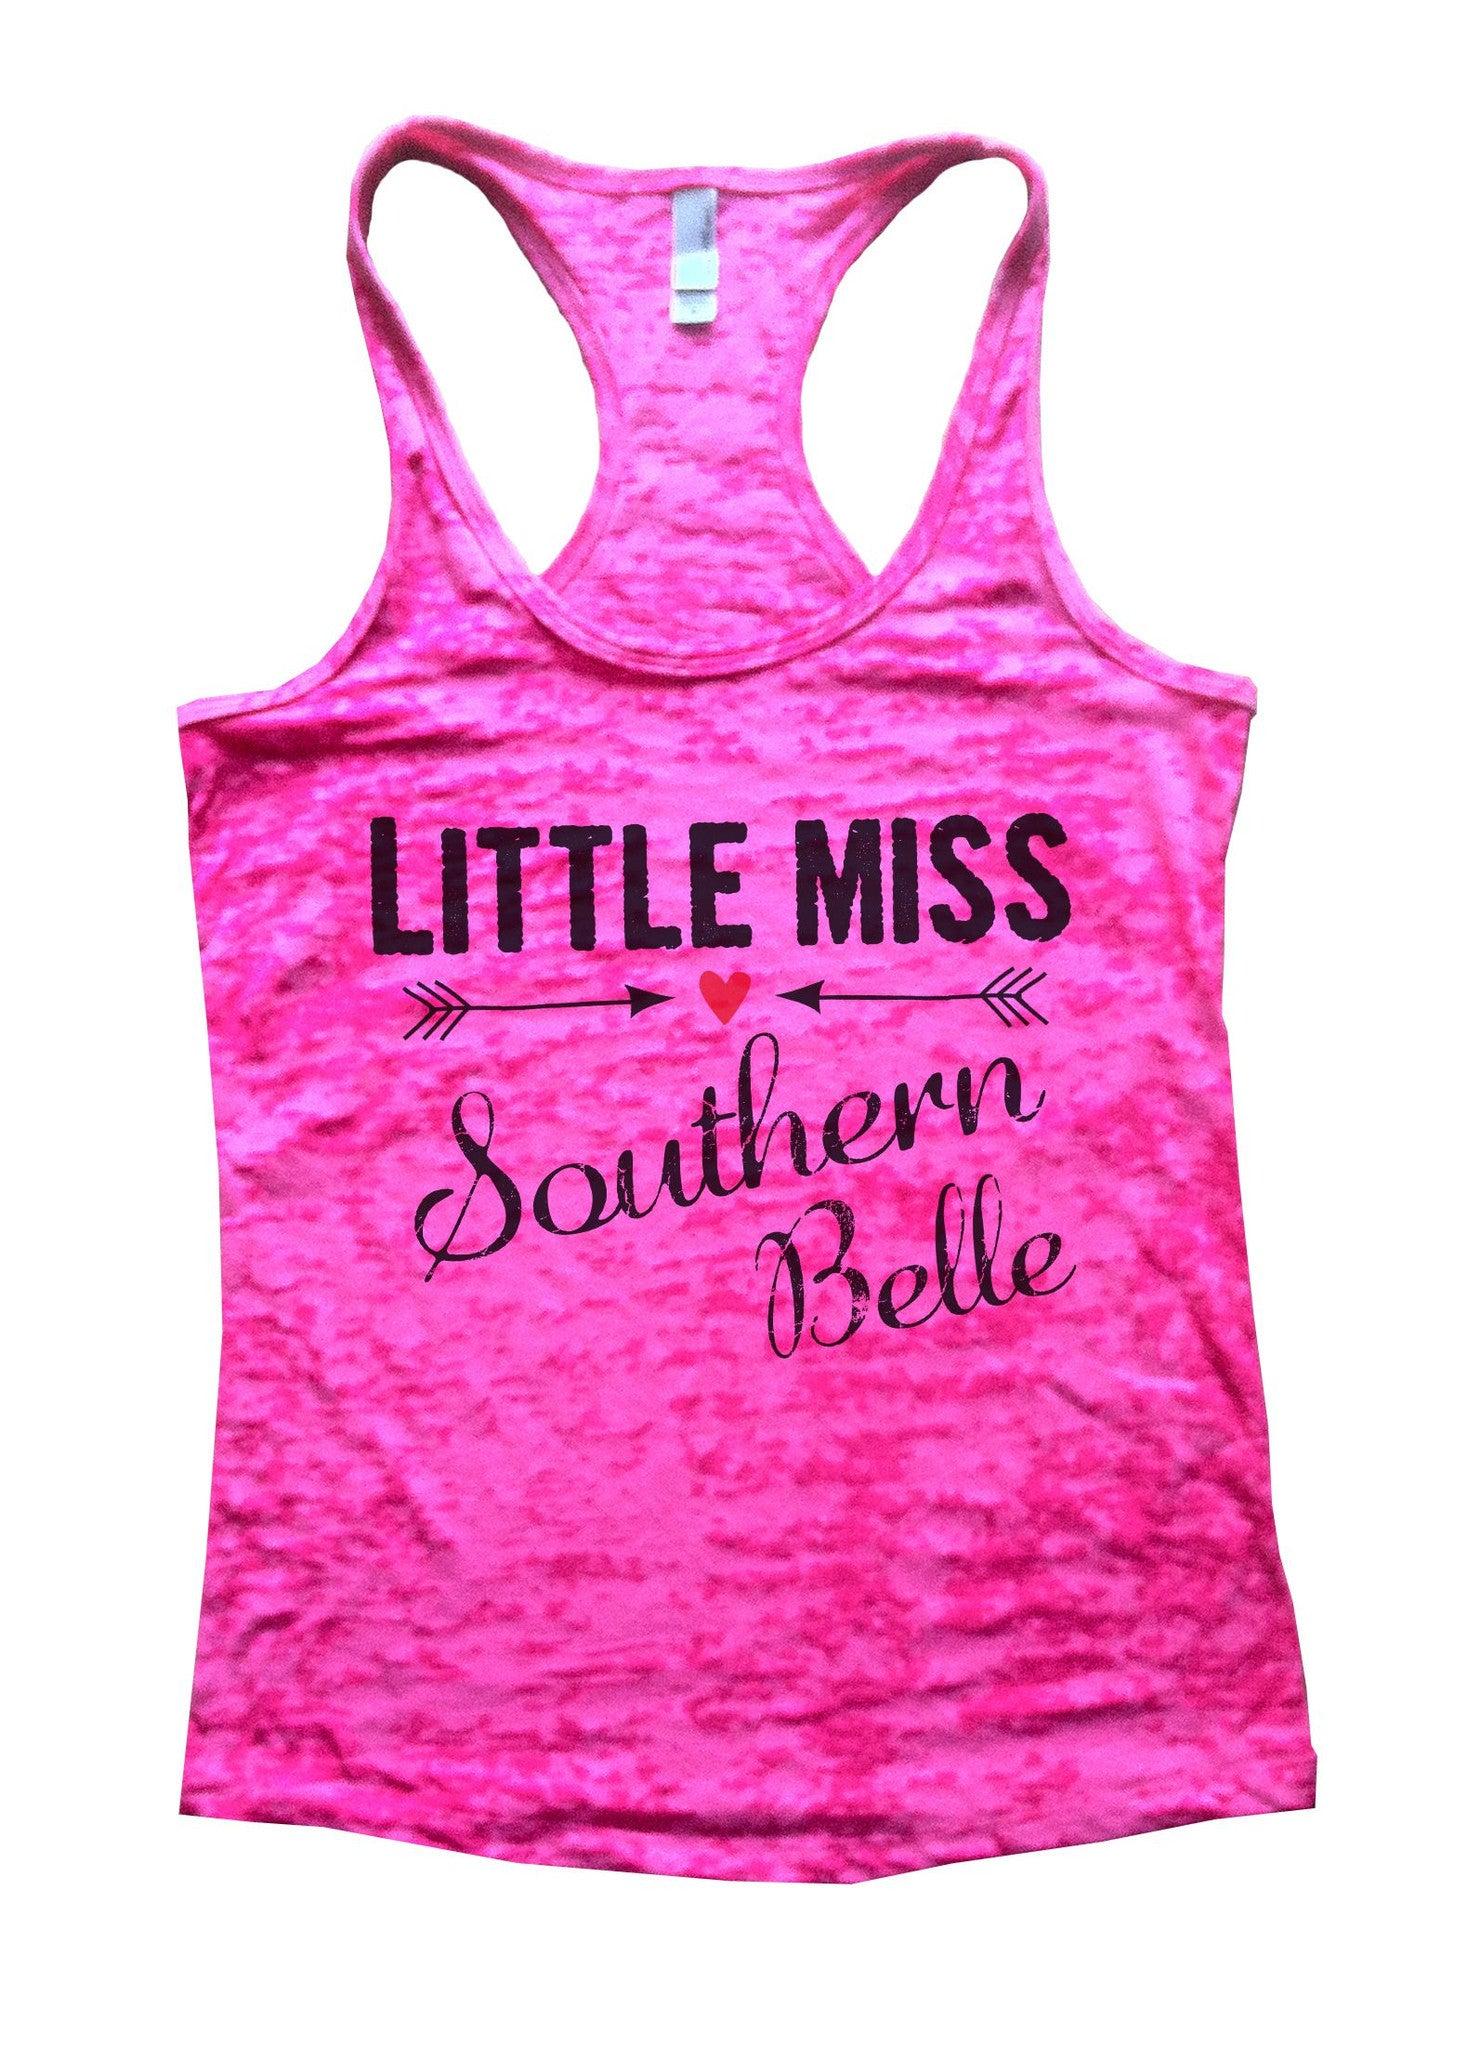 Little Miss Southern Belle Burnout Tank Top By BurnoutTankTops.com - 786 - Funny Shirts Tank Tops Burnouts and Triblends  - 3